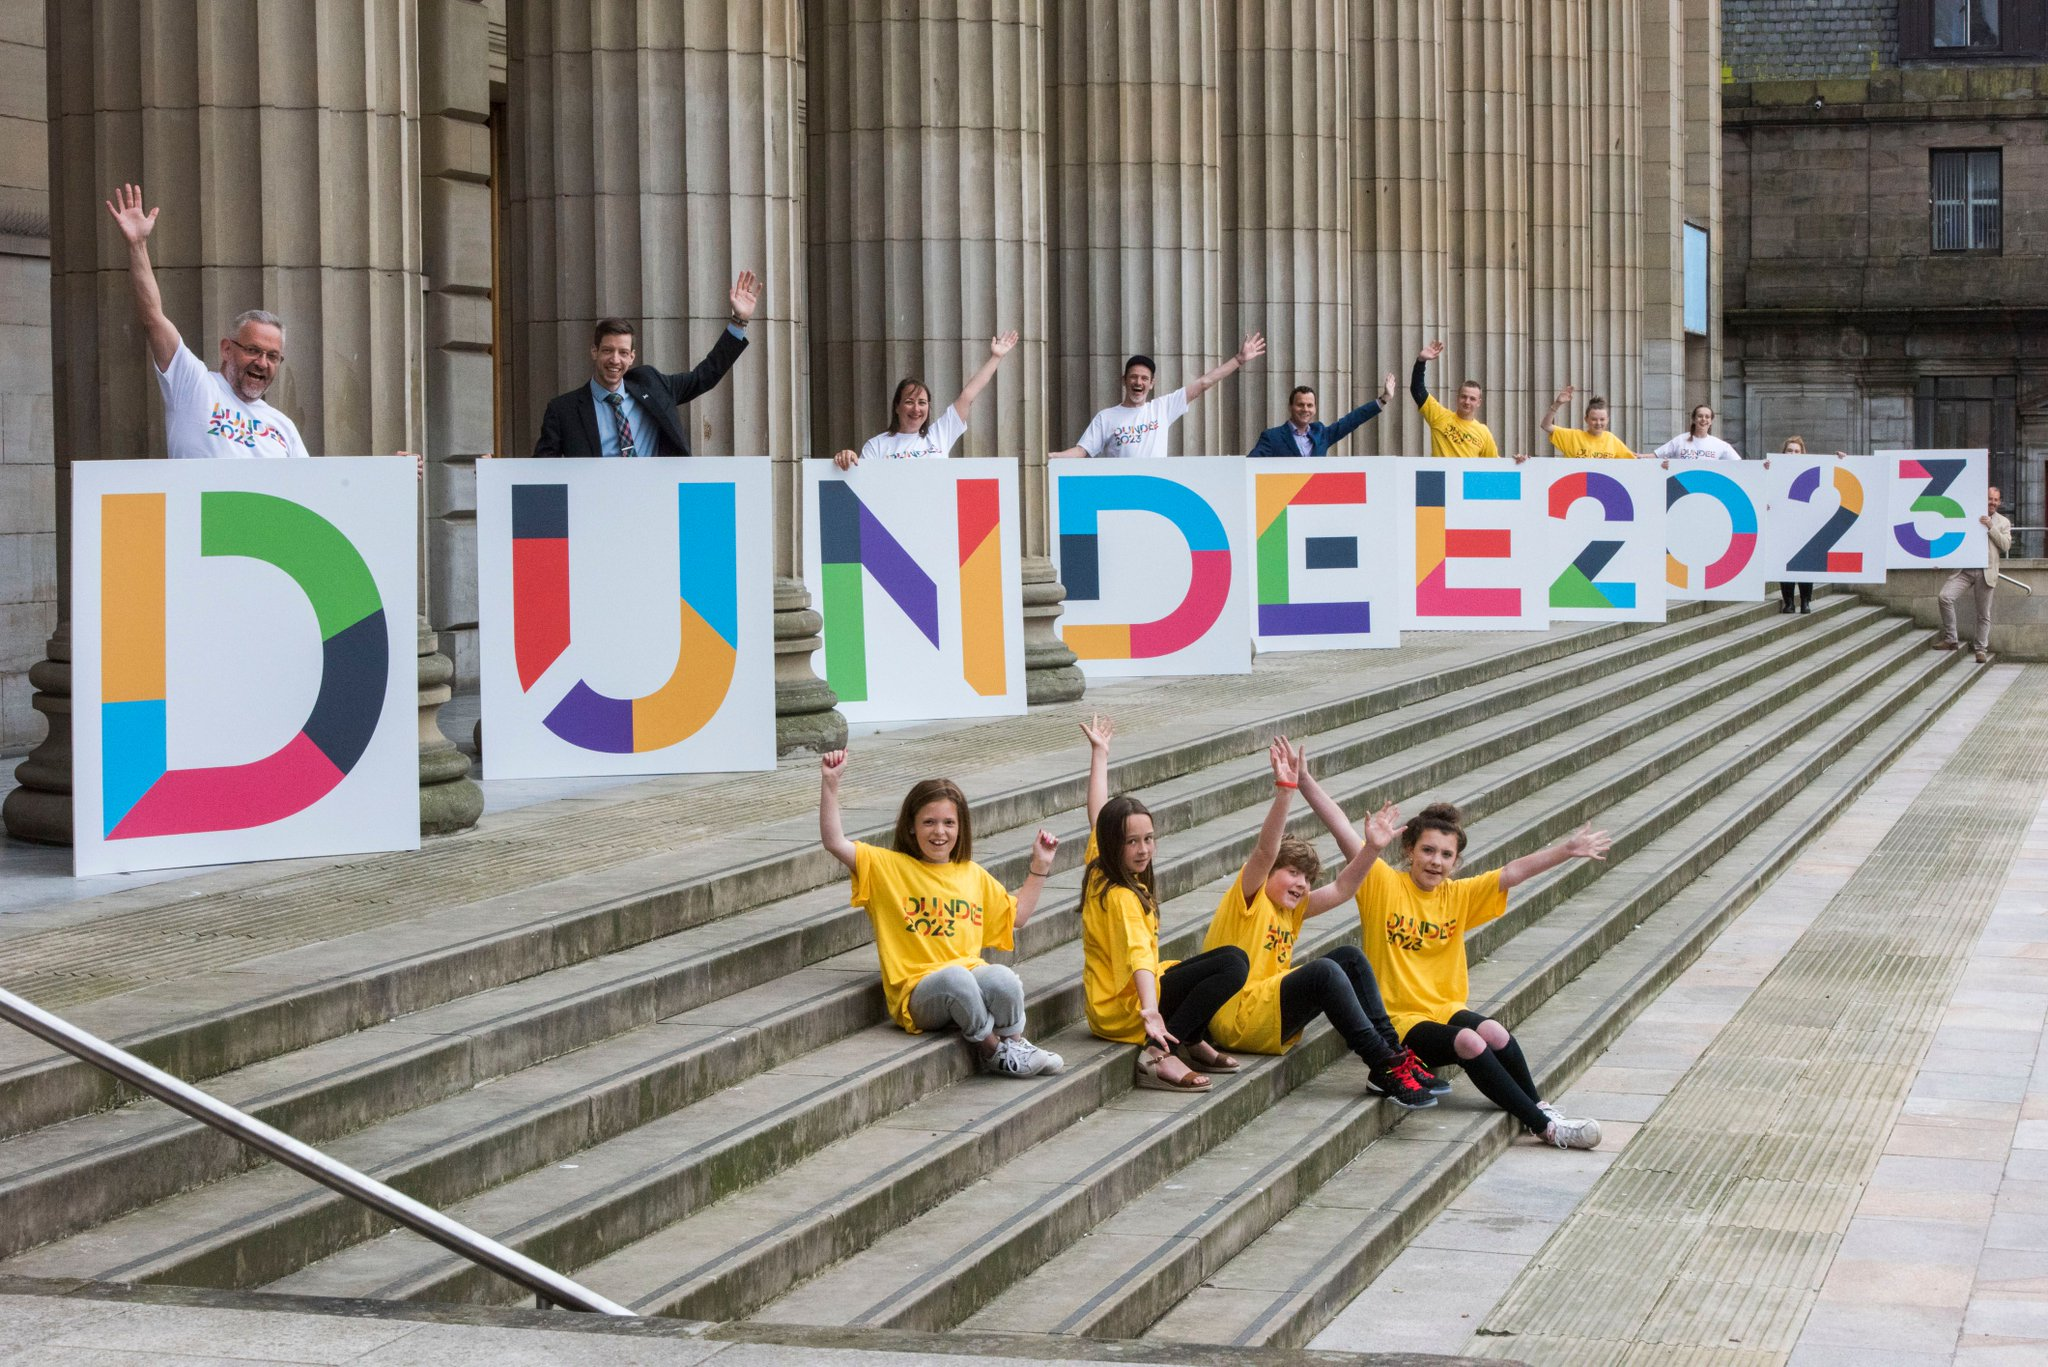 We're delighted to be supporting Dundee's bid for European Capital of Culture 😍  Let's make it happen #Dundee2023 https://t.co/uR7lWlck4j